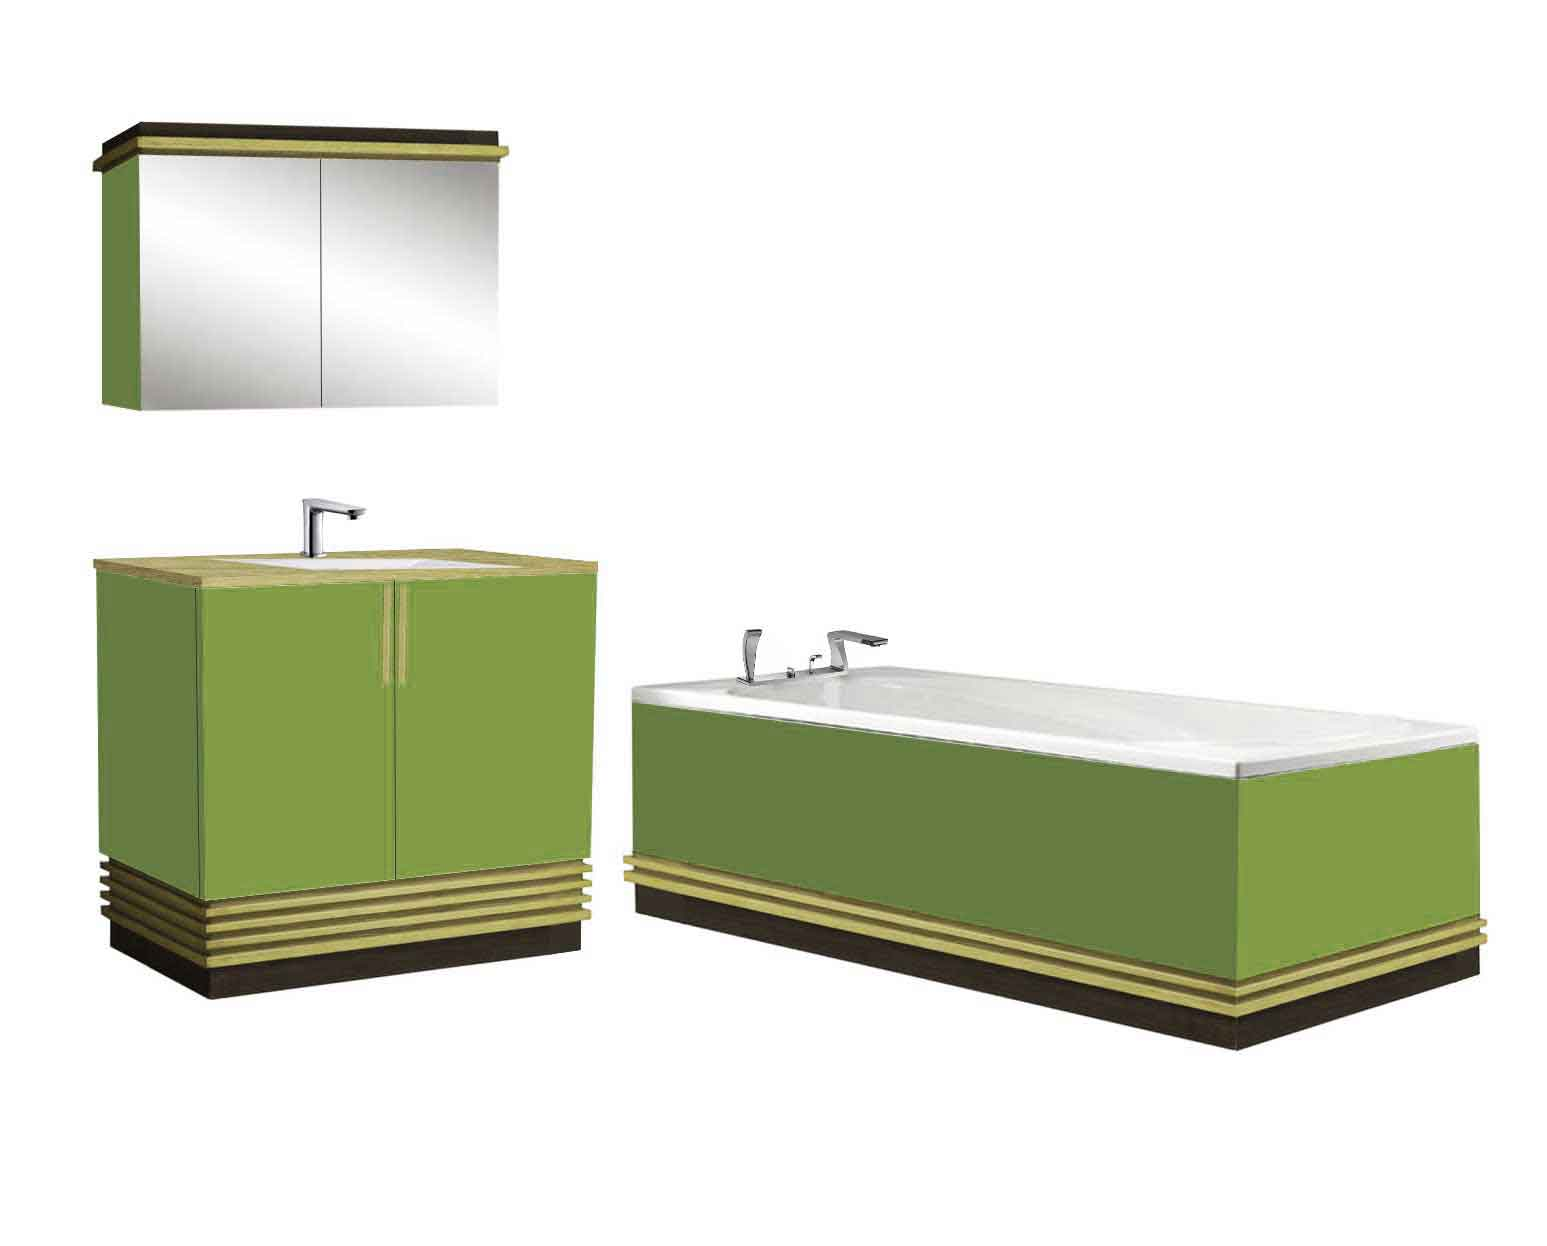 new Art Deco Streamlined style lacquered wood bathroom vanity unit